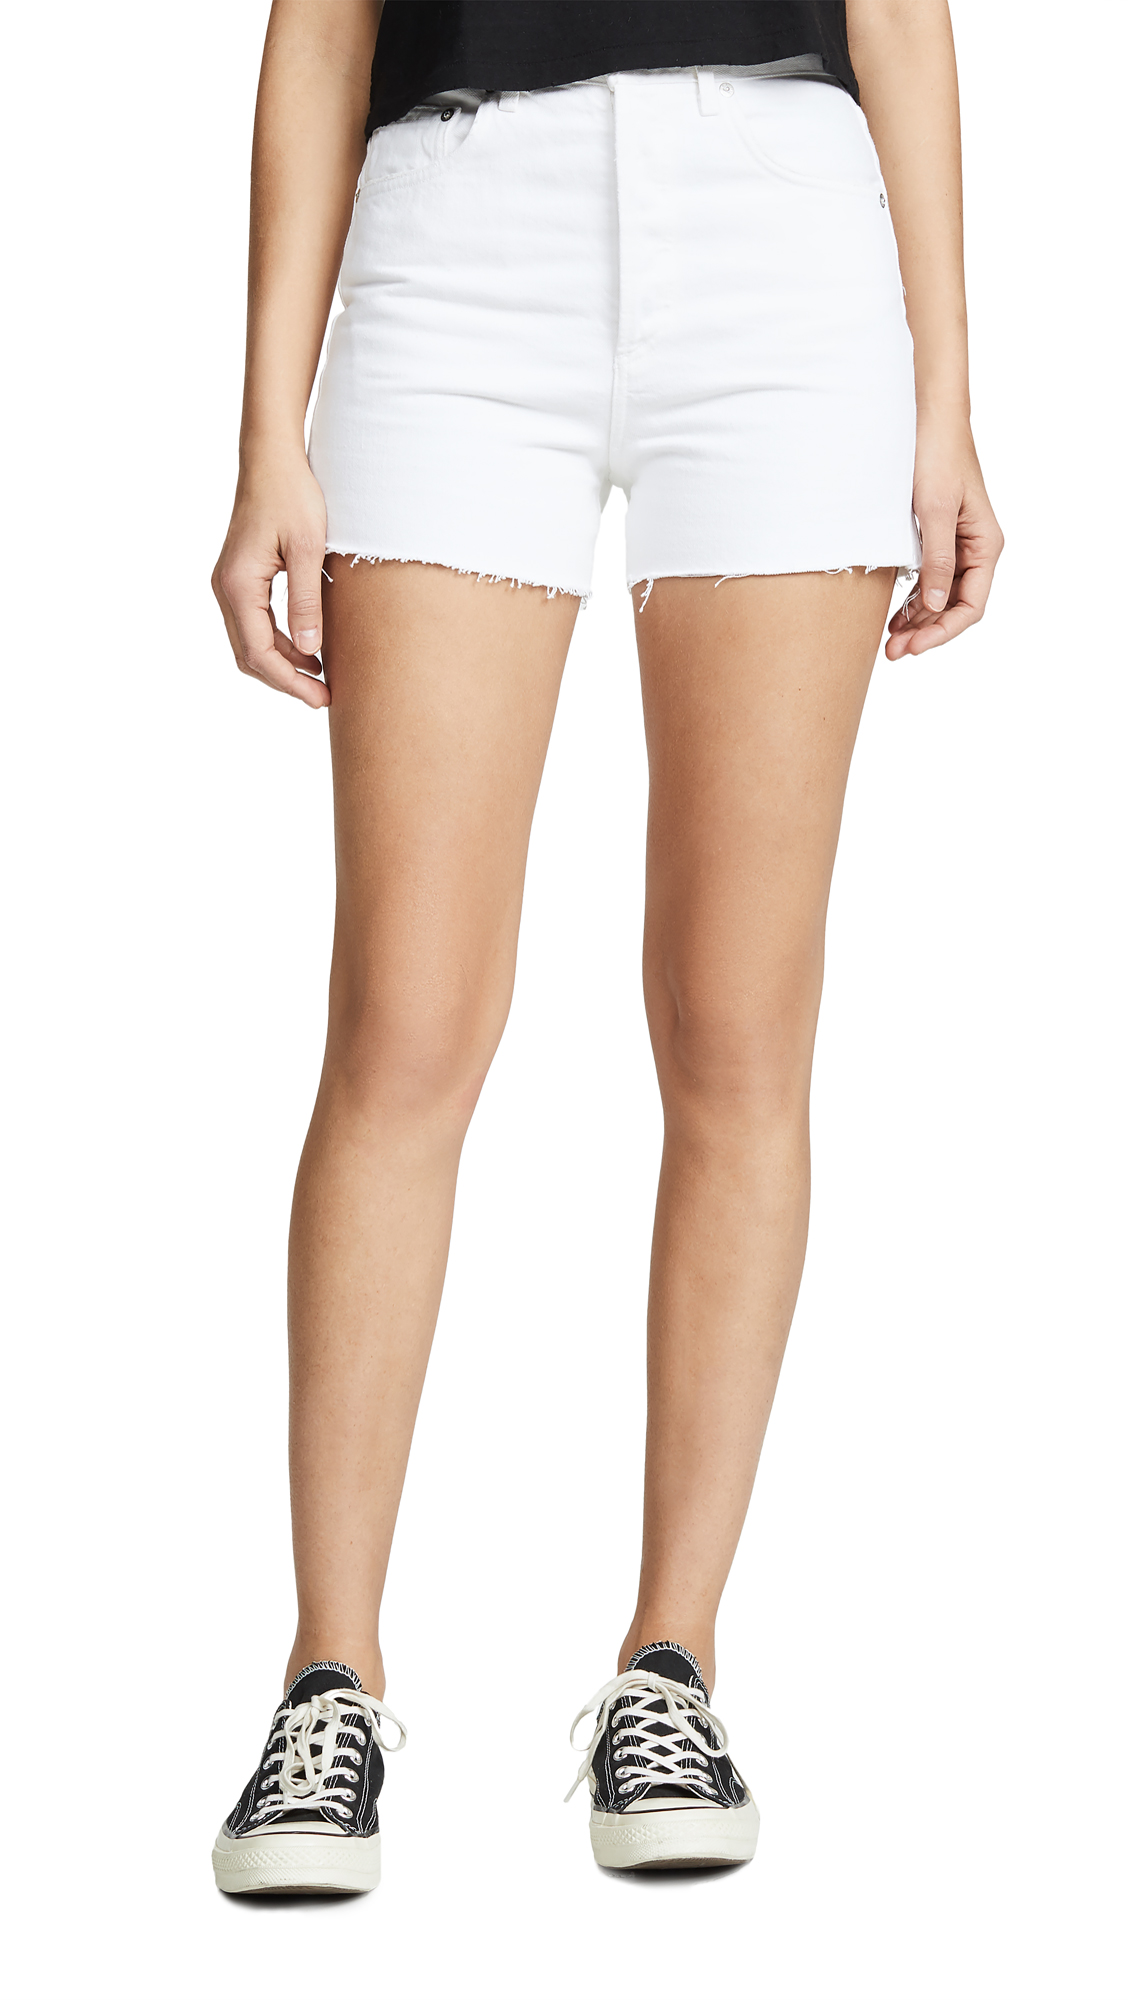 AGOLDE Ultra Hi Rise Close Fit Dee Shorts